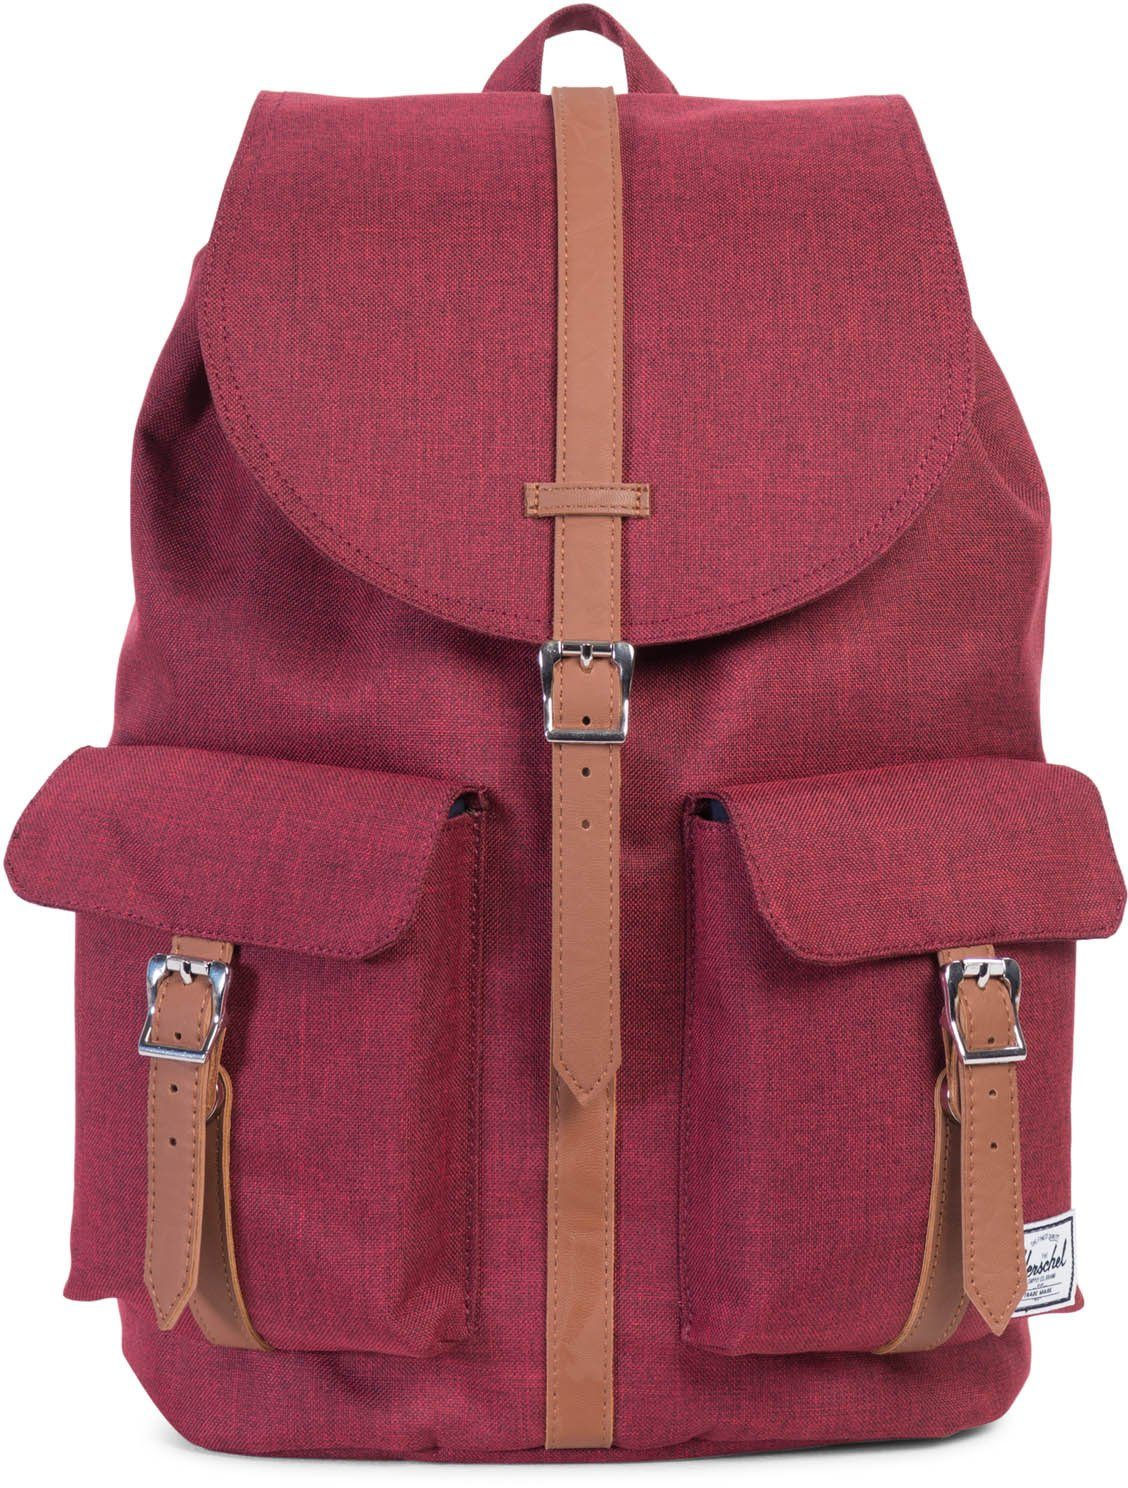 Herschel Rucksack mit Laptopfach, »Dawson Backpack, Winetasting, Crosshatch«